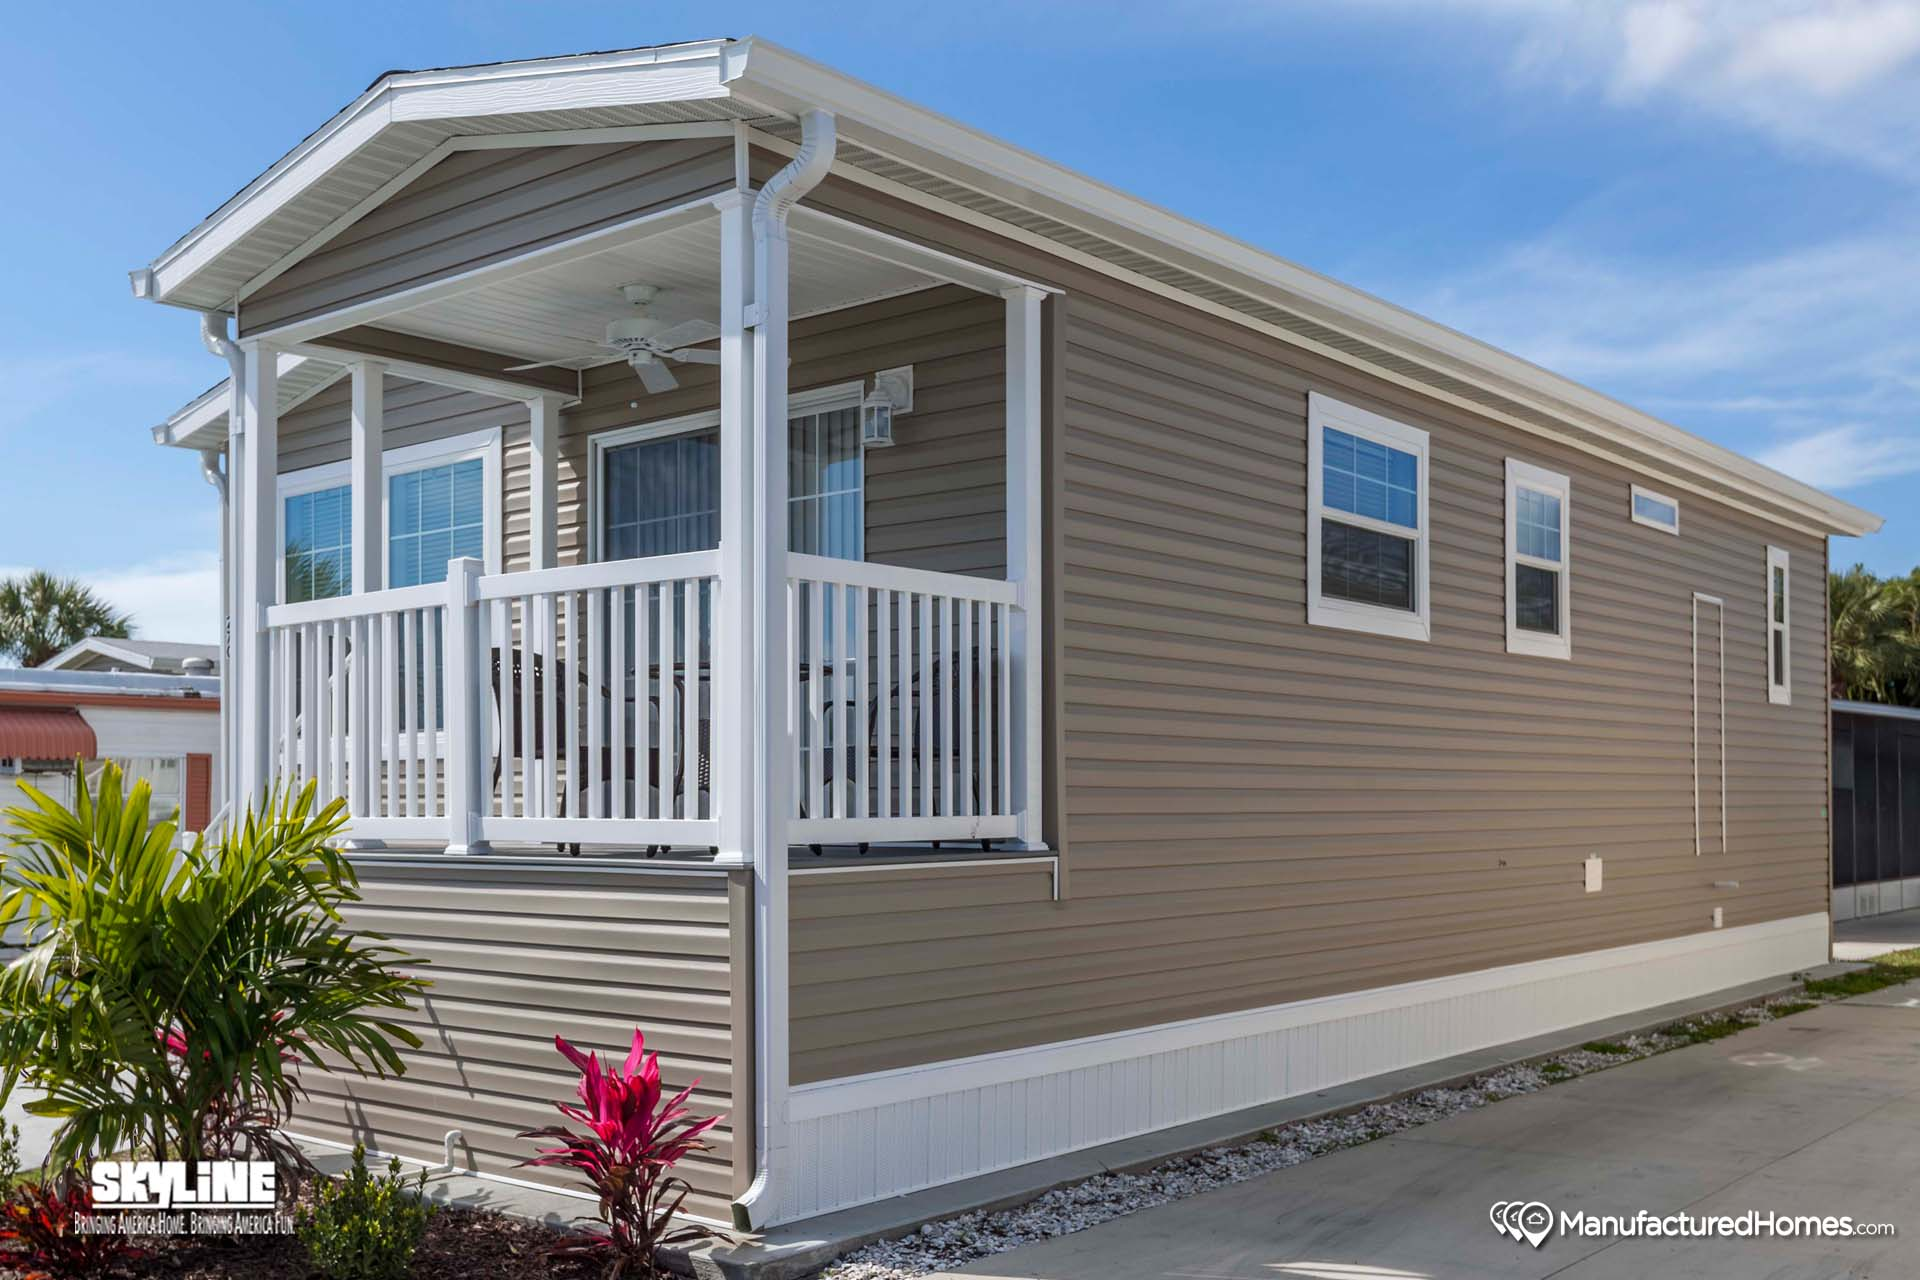 ocala manufactured home dealers with 4301 Ct on 3163 likewise Mobile Home For Sale additionally 4301 ct in addition Mobile Home Dealer Locations further 6244.